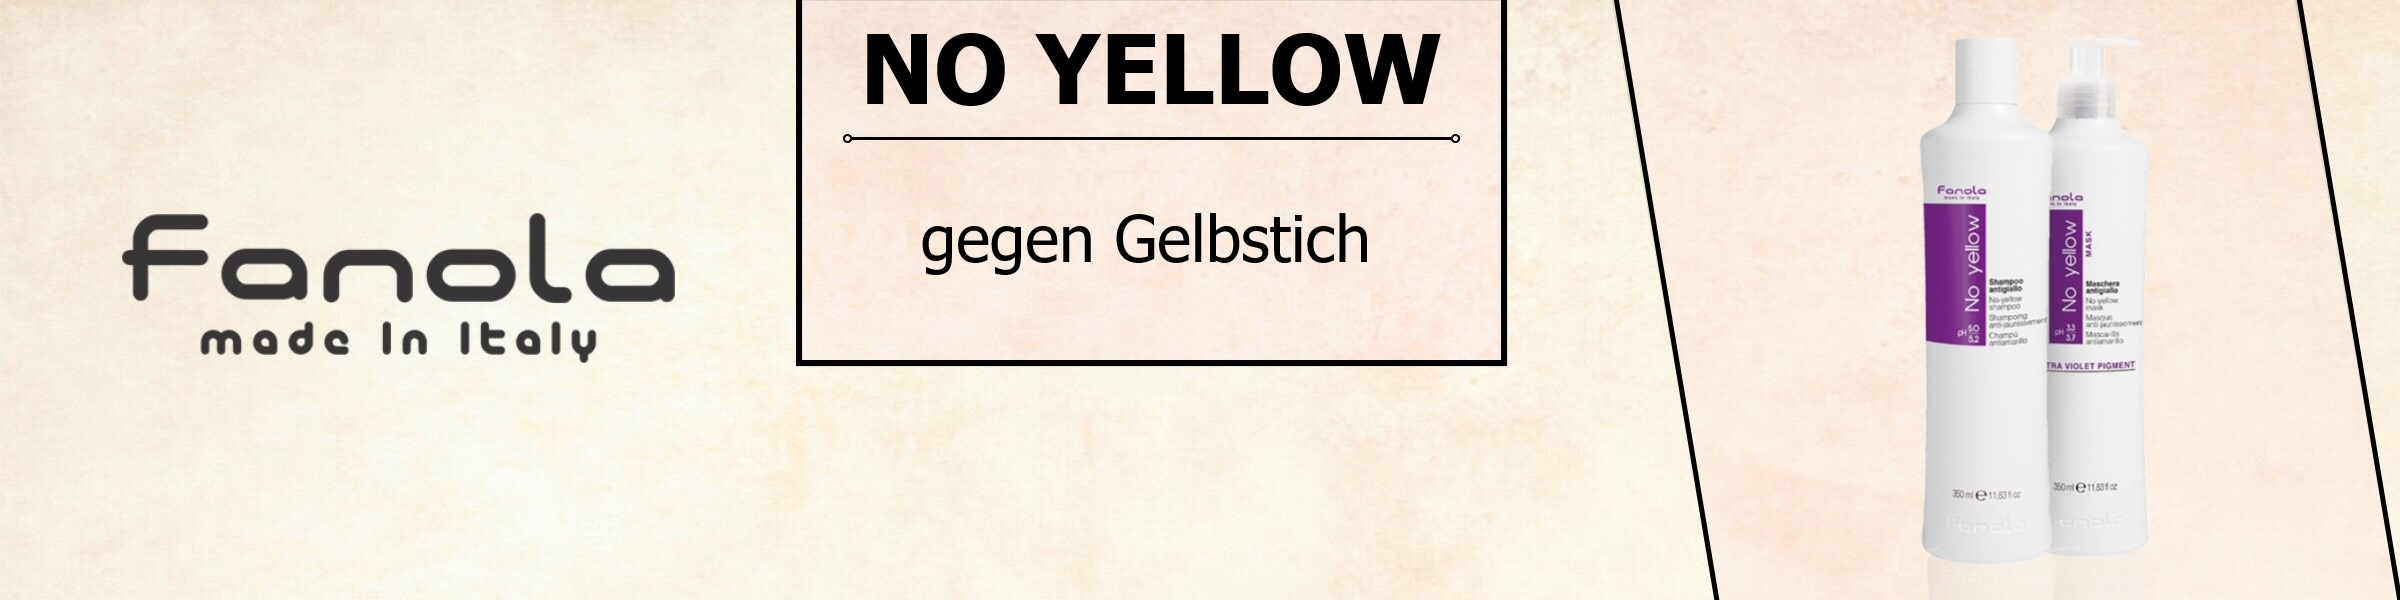 No Yellow